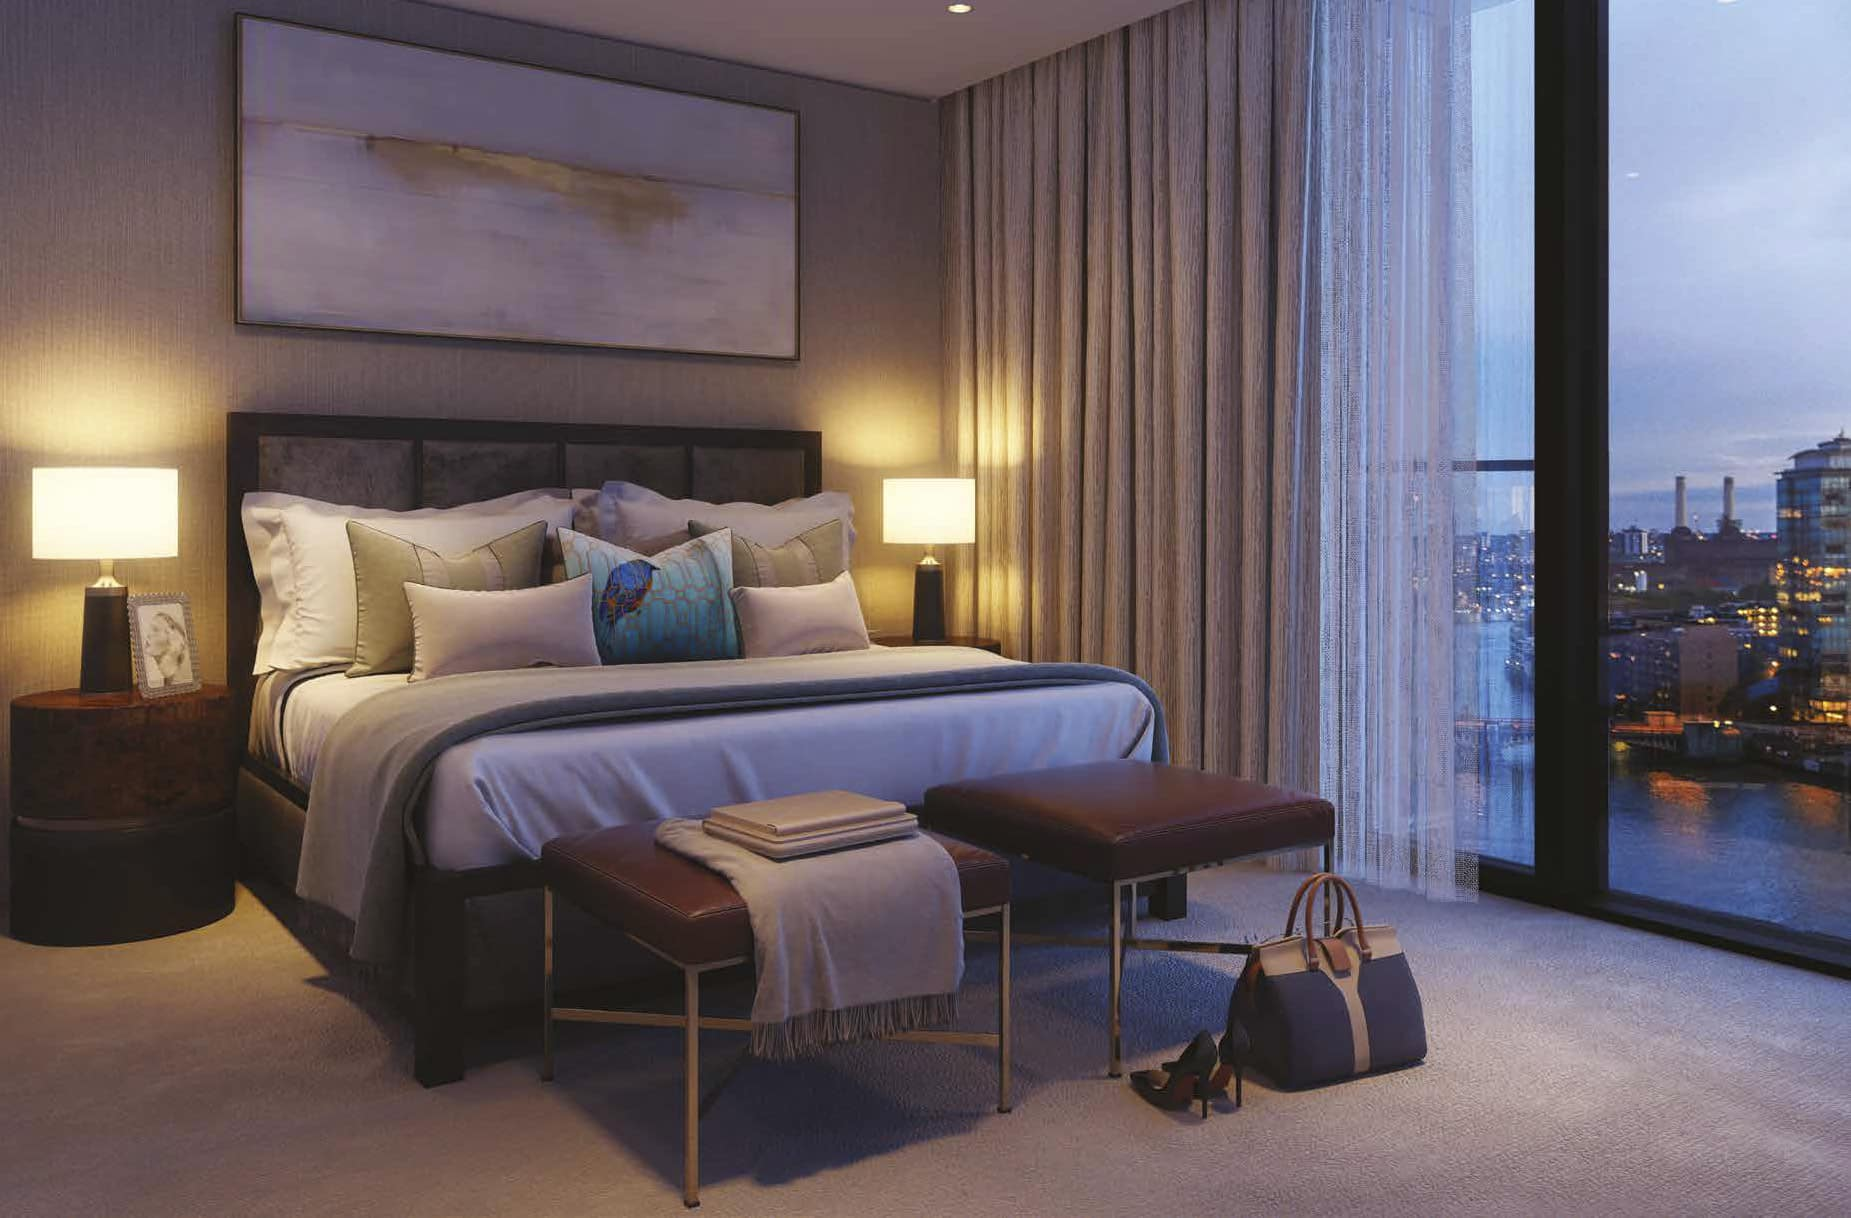 The Dumont by Keybridge in Lambeth. Premium apartments for Sale in London